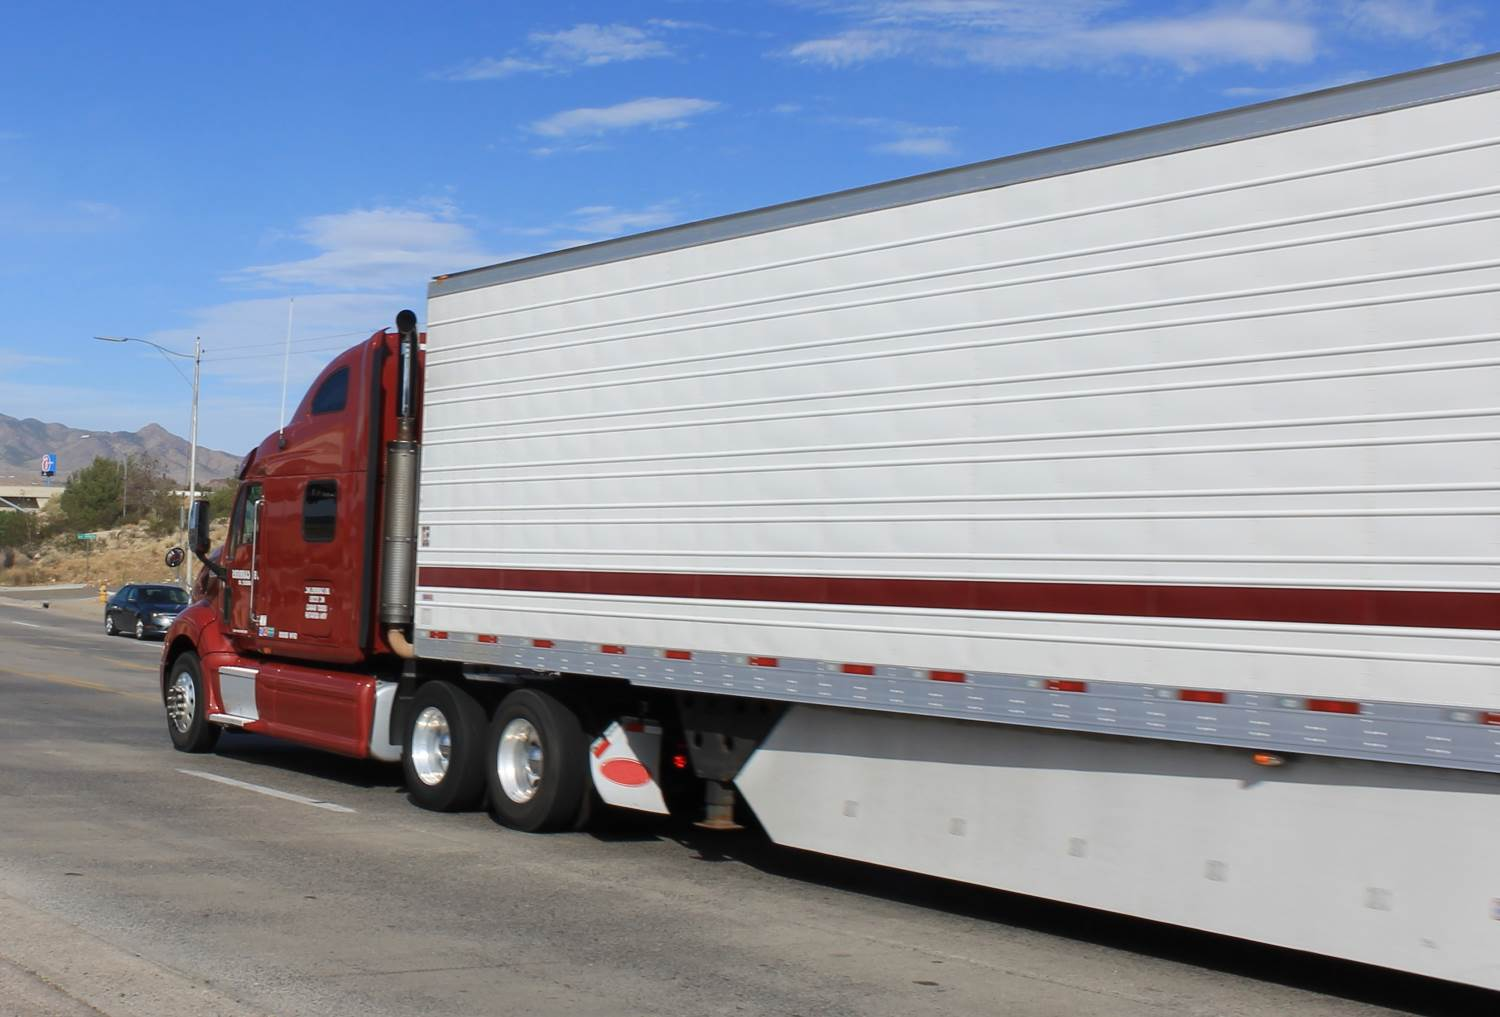 How to reduce fuel use using truck aerodynamic aids